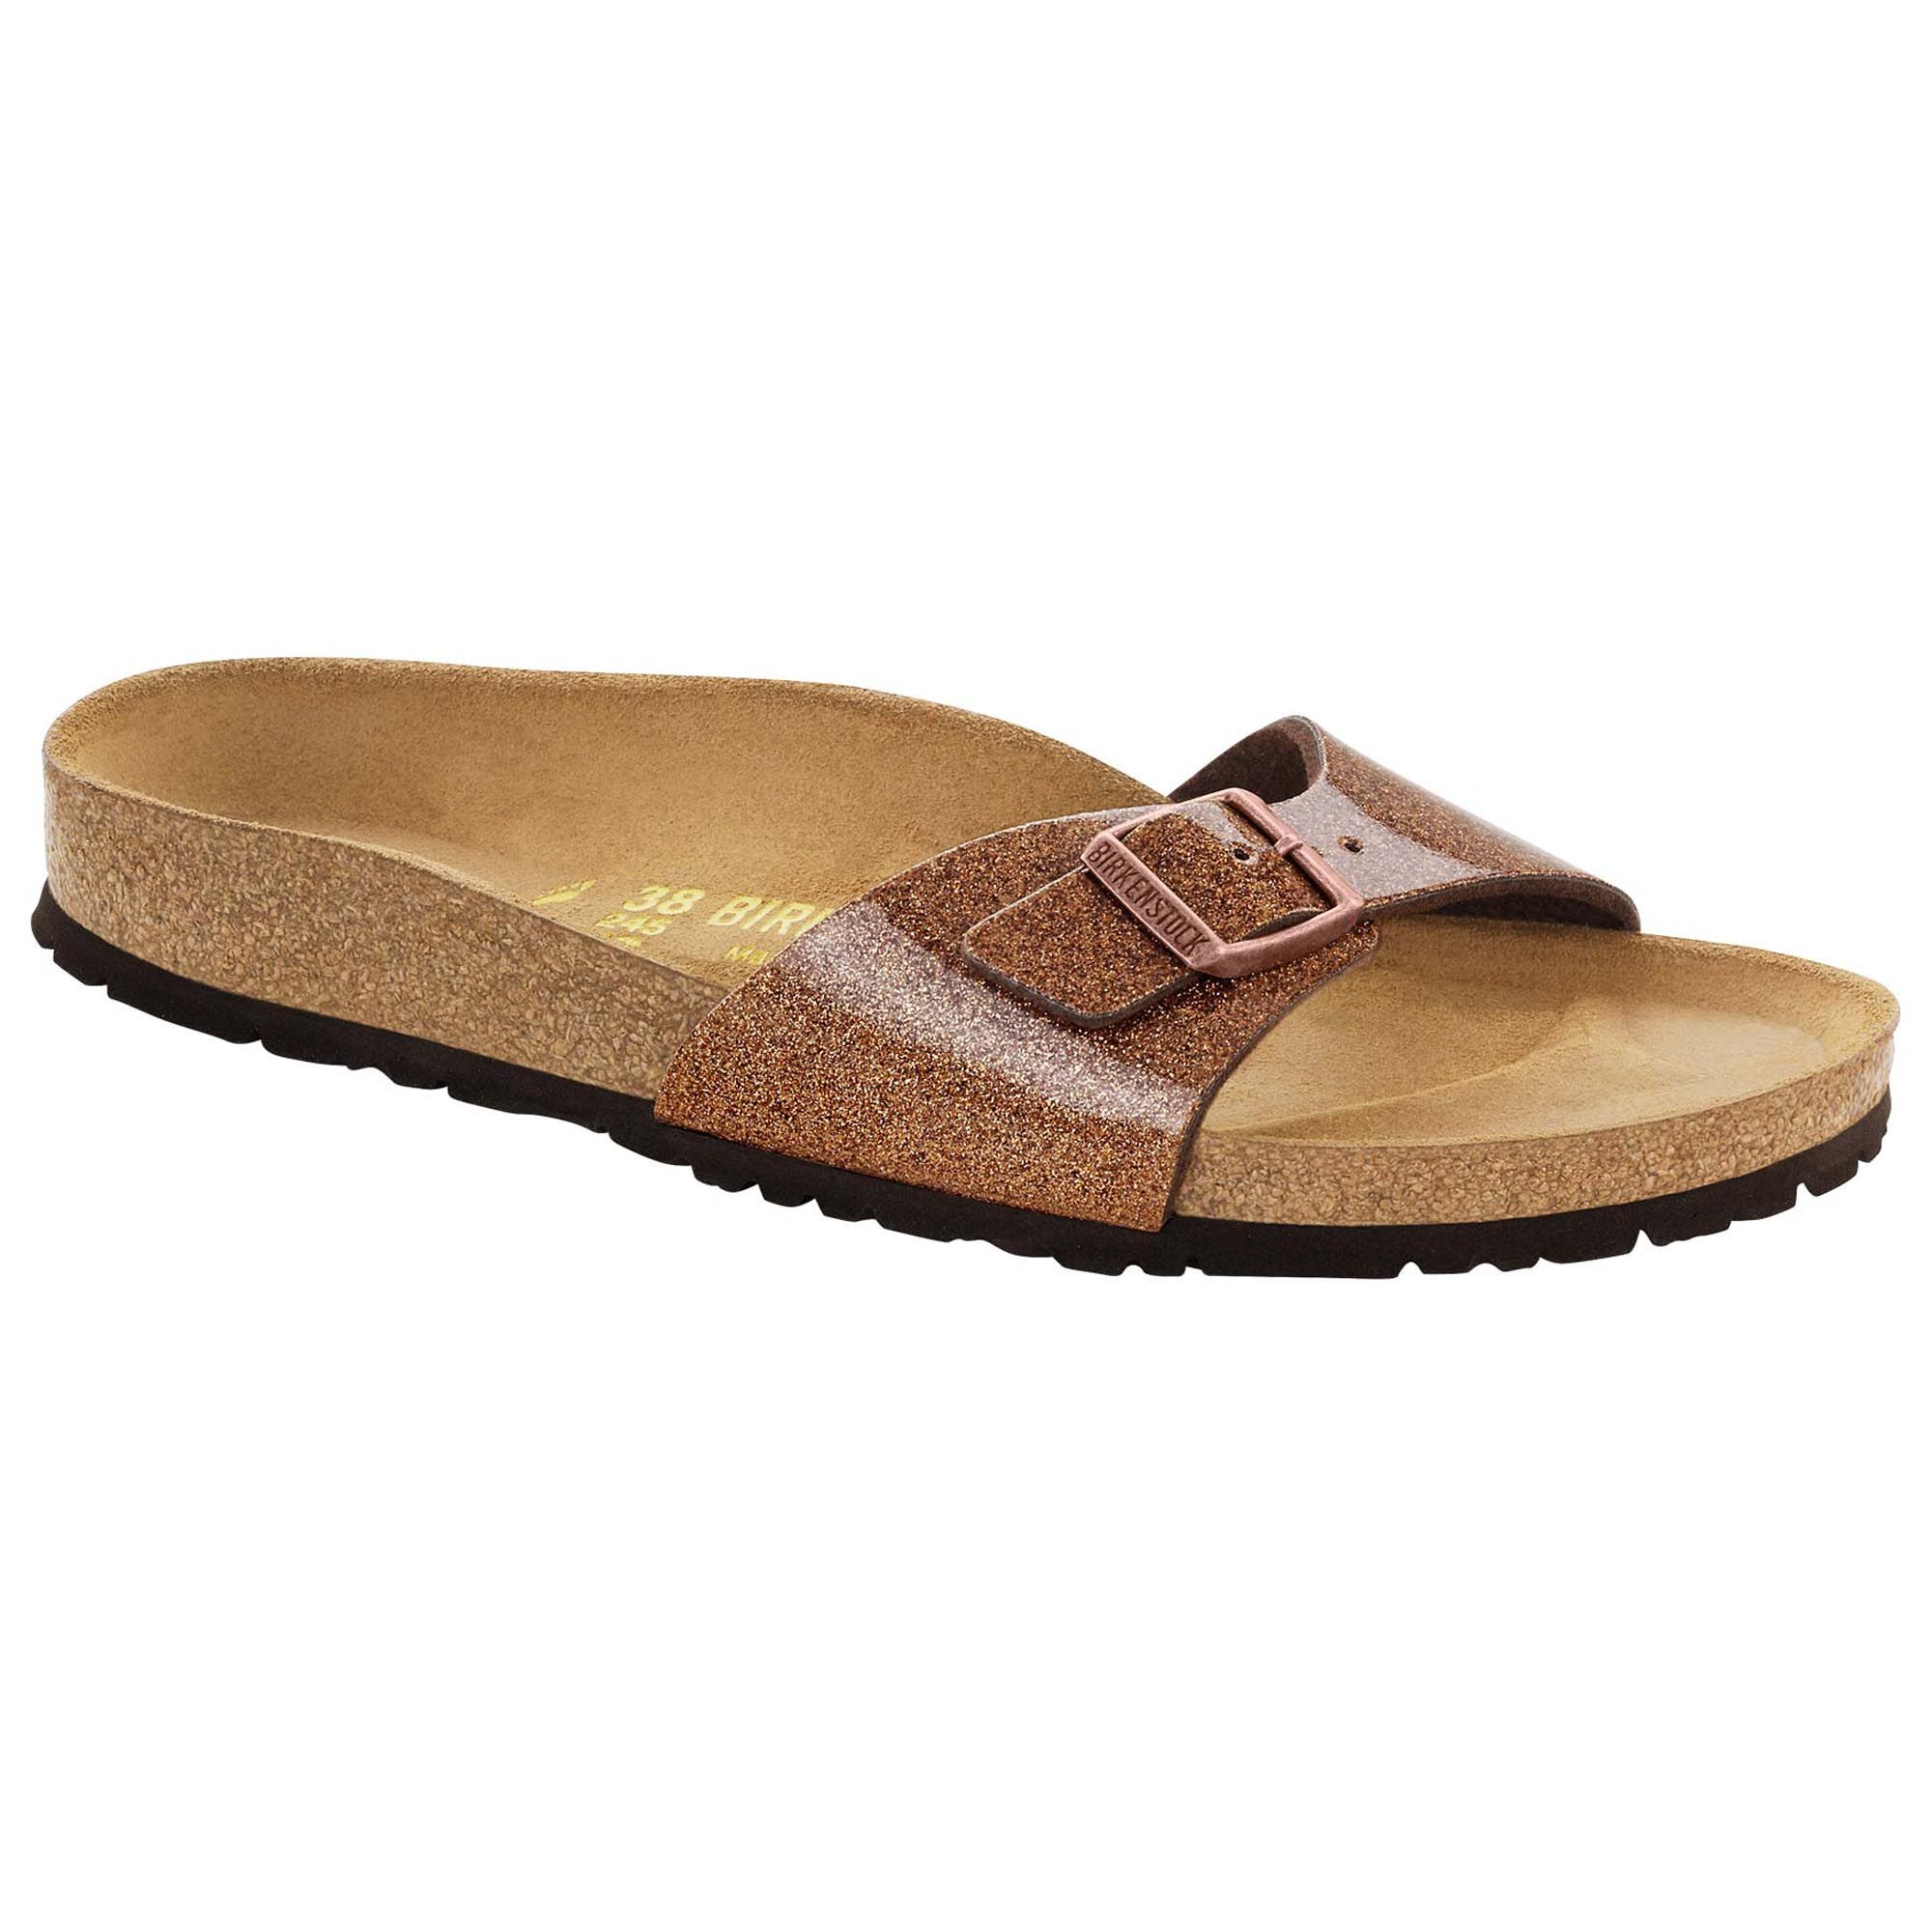 9cdc9502b34 Birkenstock Madrid Birko-Flor in Magic Galaxy Bronze